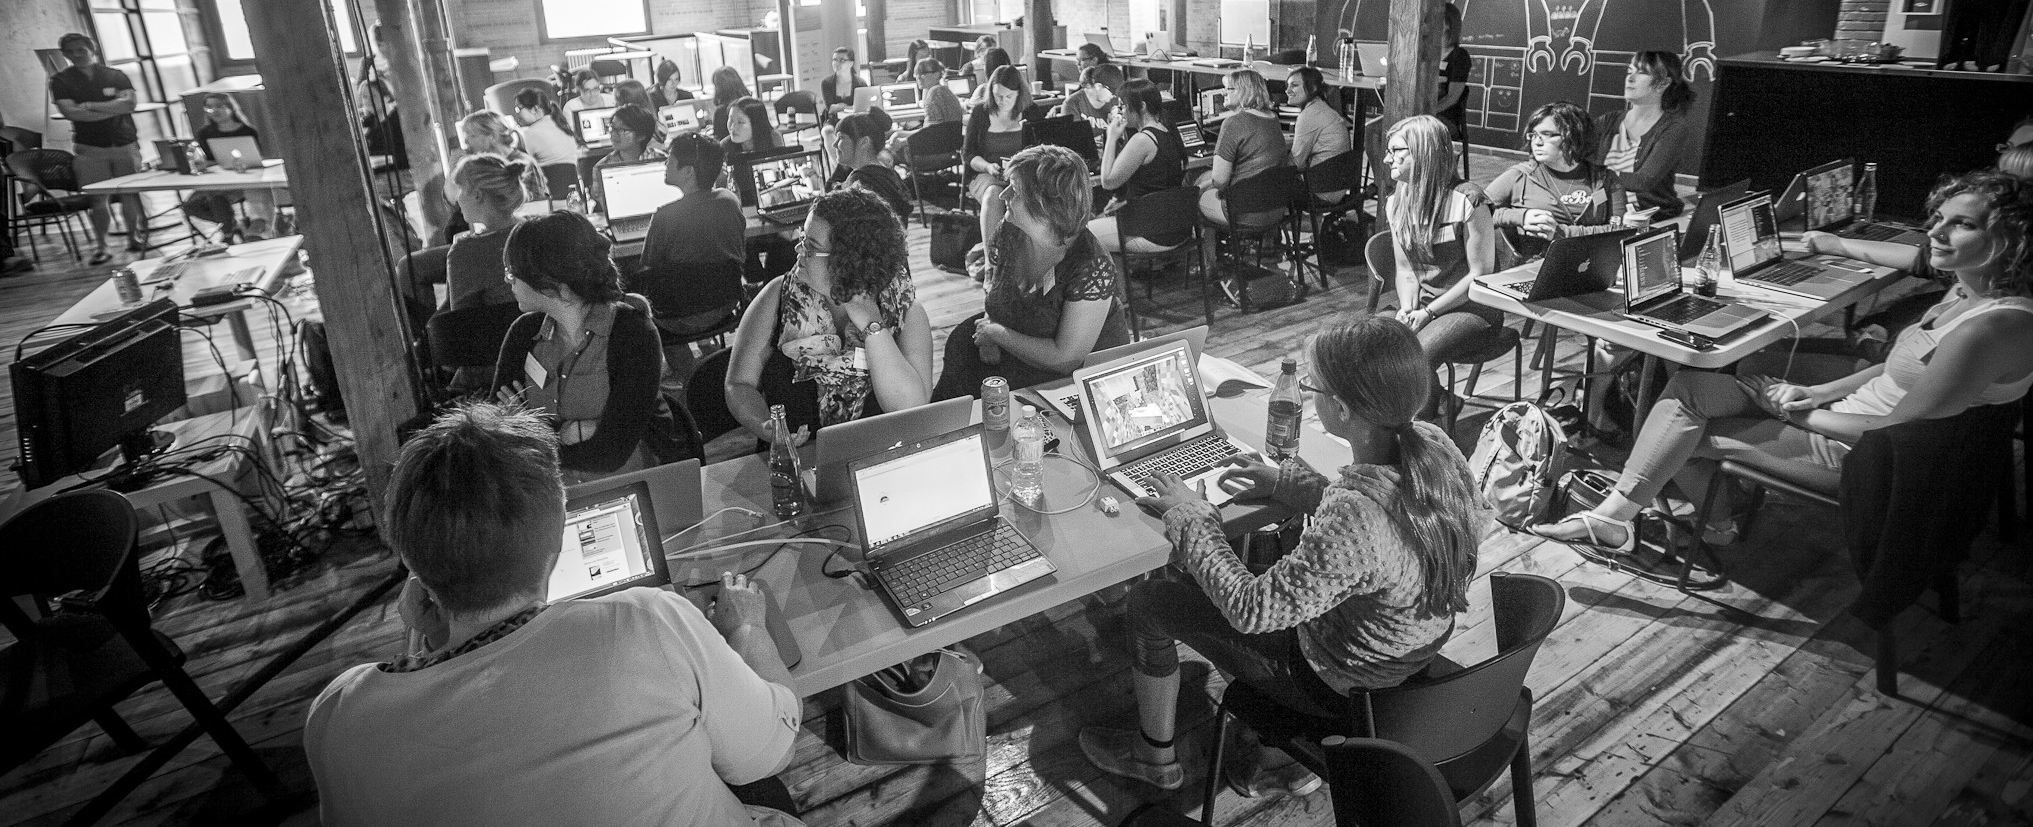 Building Solutions with Tech at our Teens Learning Code Hackathon